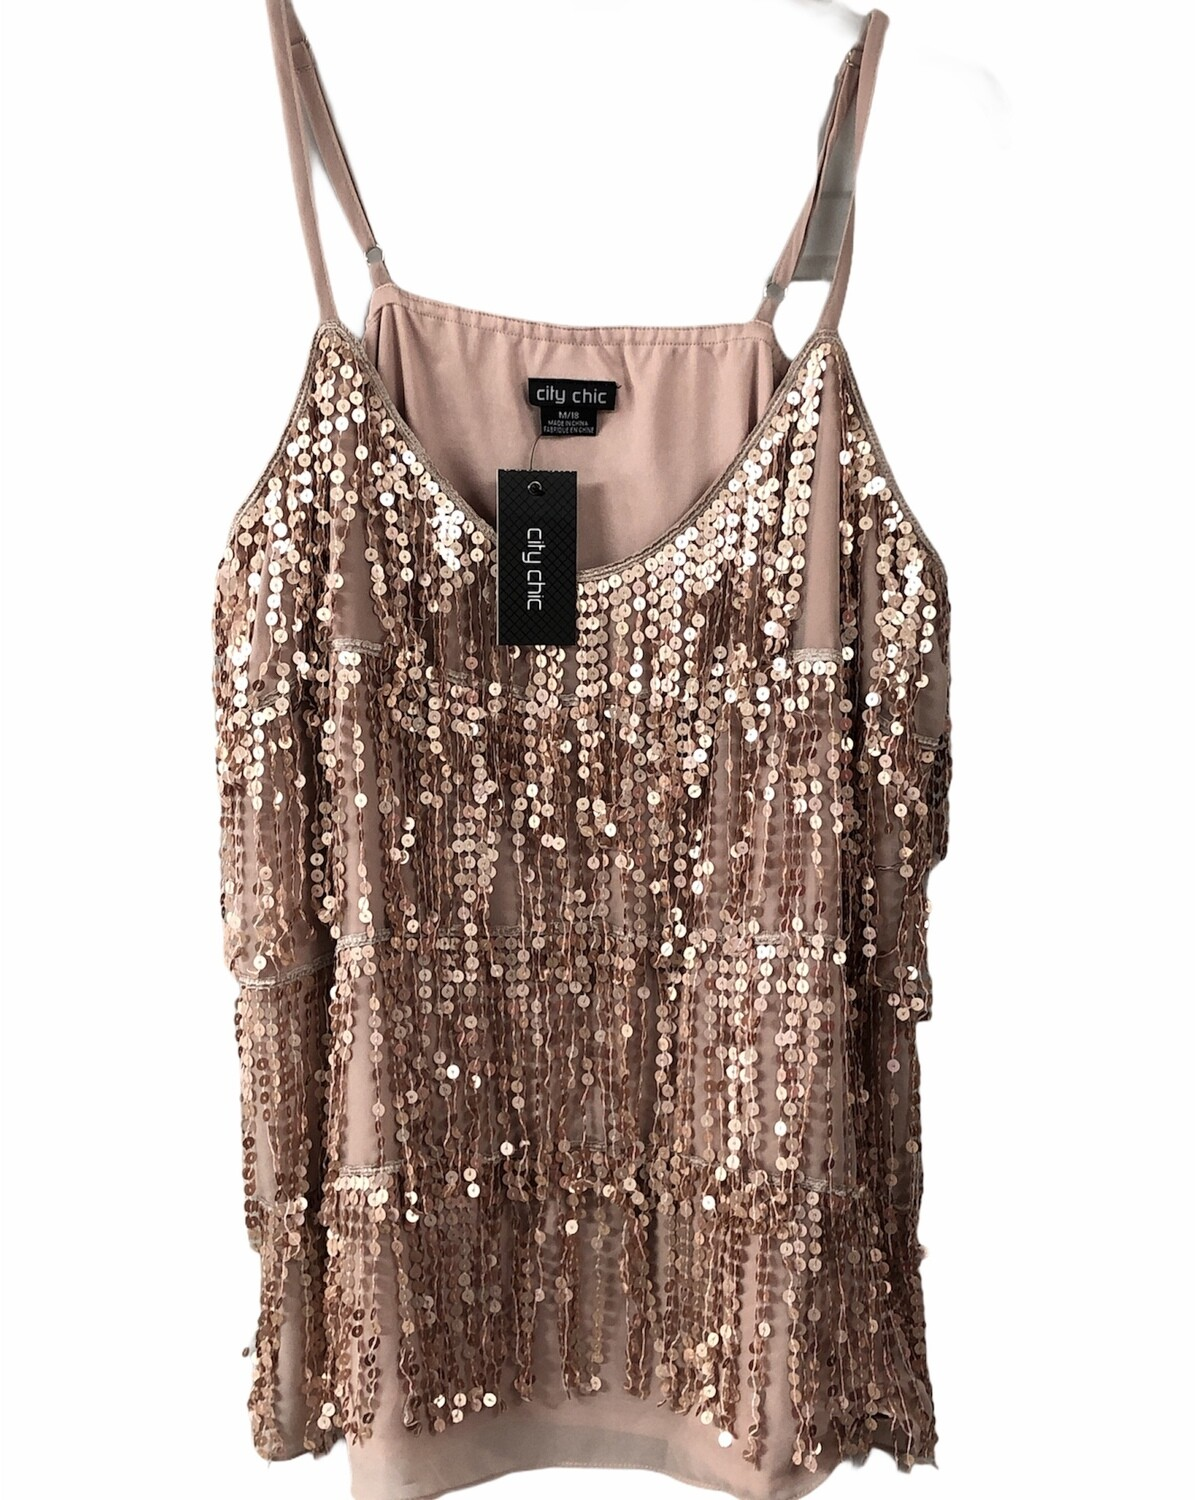 New CITY CHIC Rose Gold Sequin Fringe Tank size 18, $69